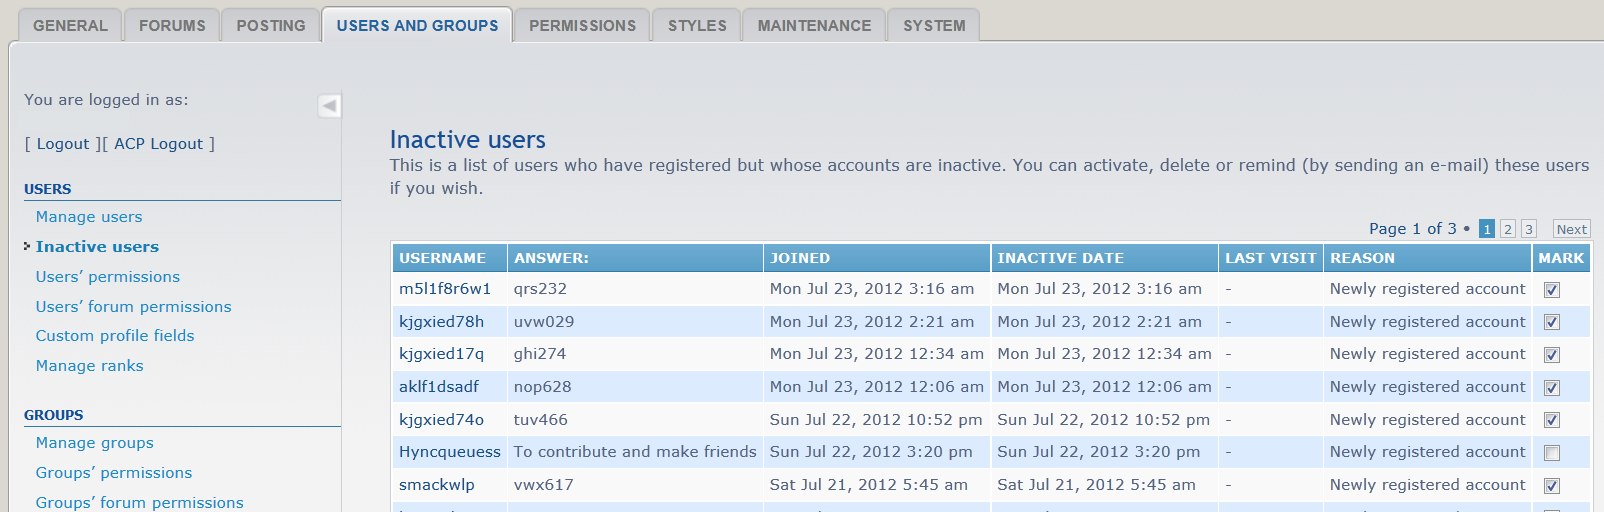 Add custom profile fields to 'inactive users' list.png